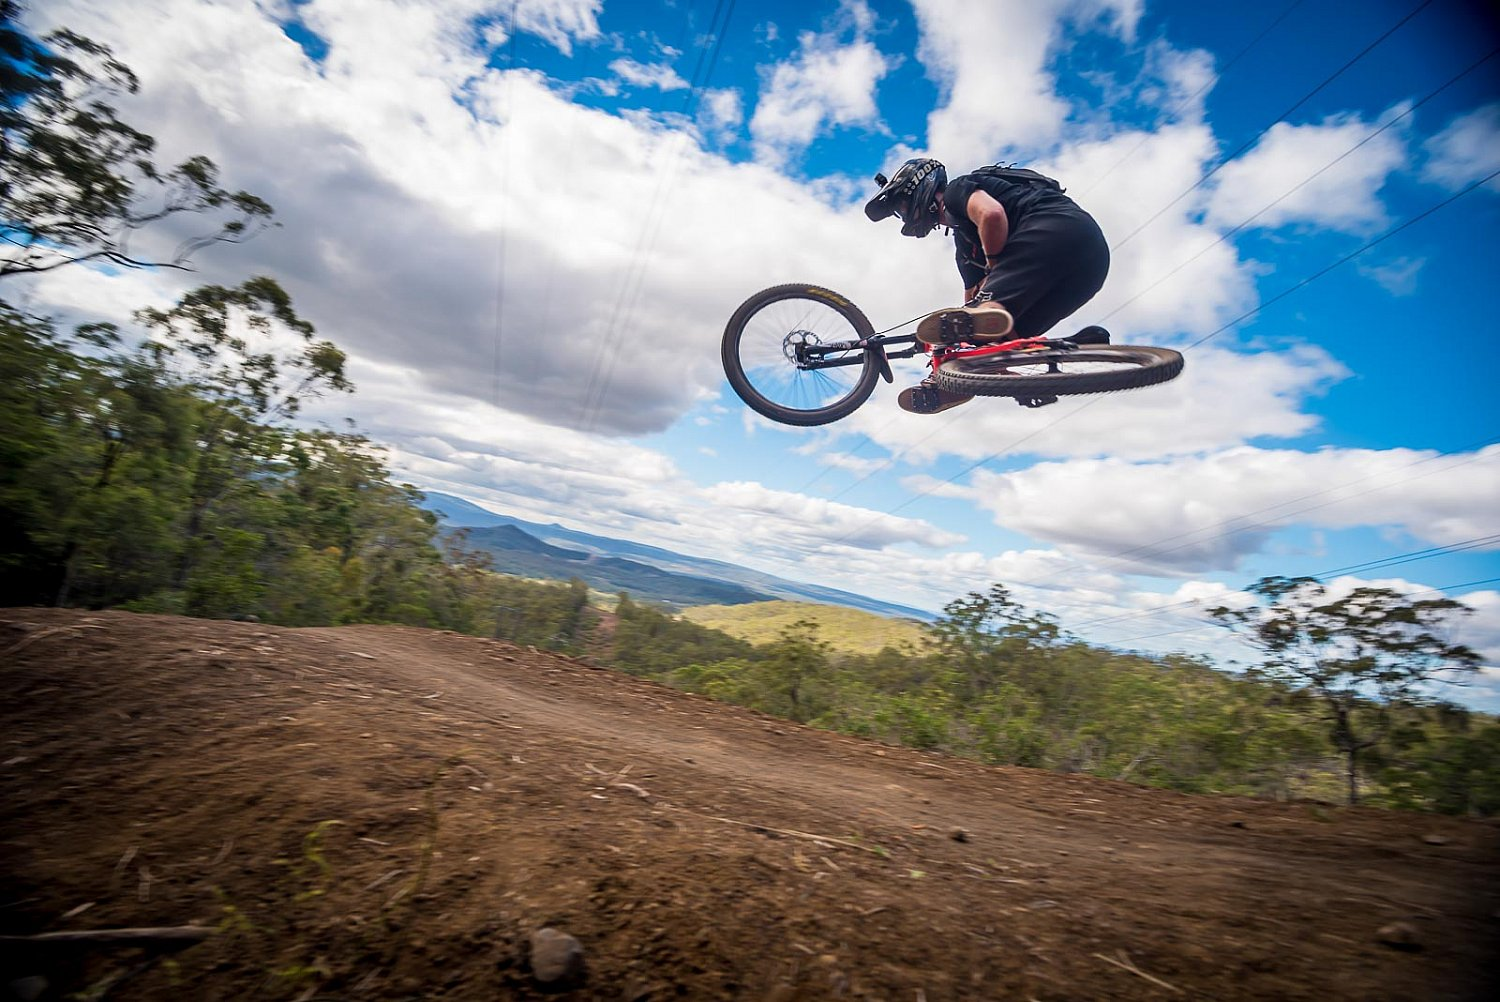 MTB Ride and Shoot Photography Workshop (1st March 2020) | LR1_0853_Lachlan_Ryan_19-05-2019.jpg